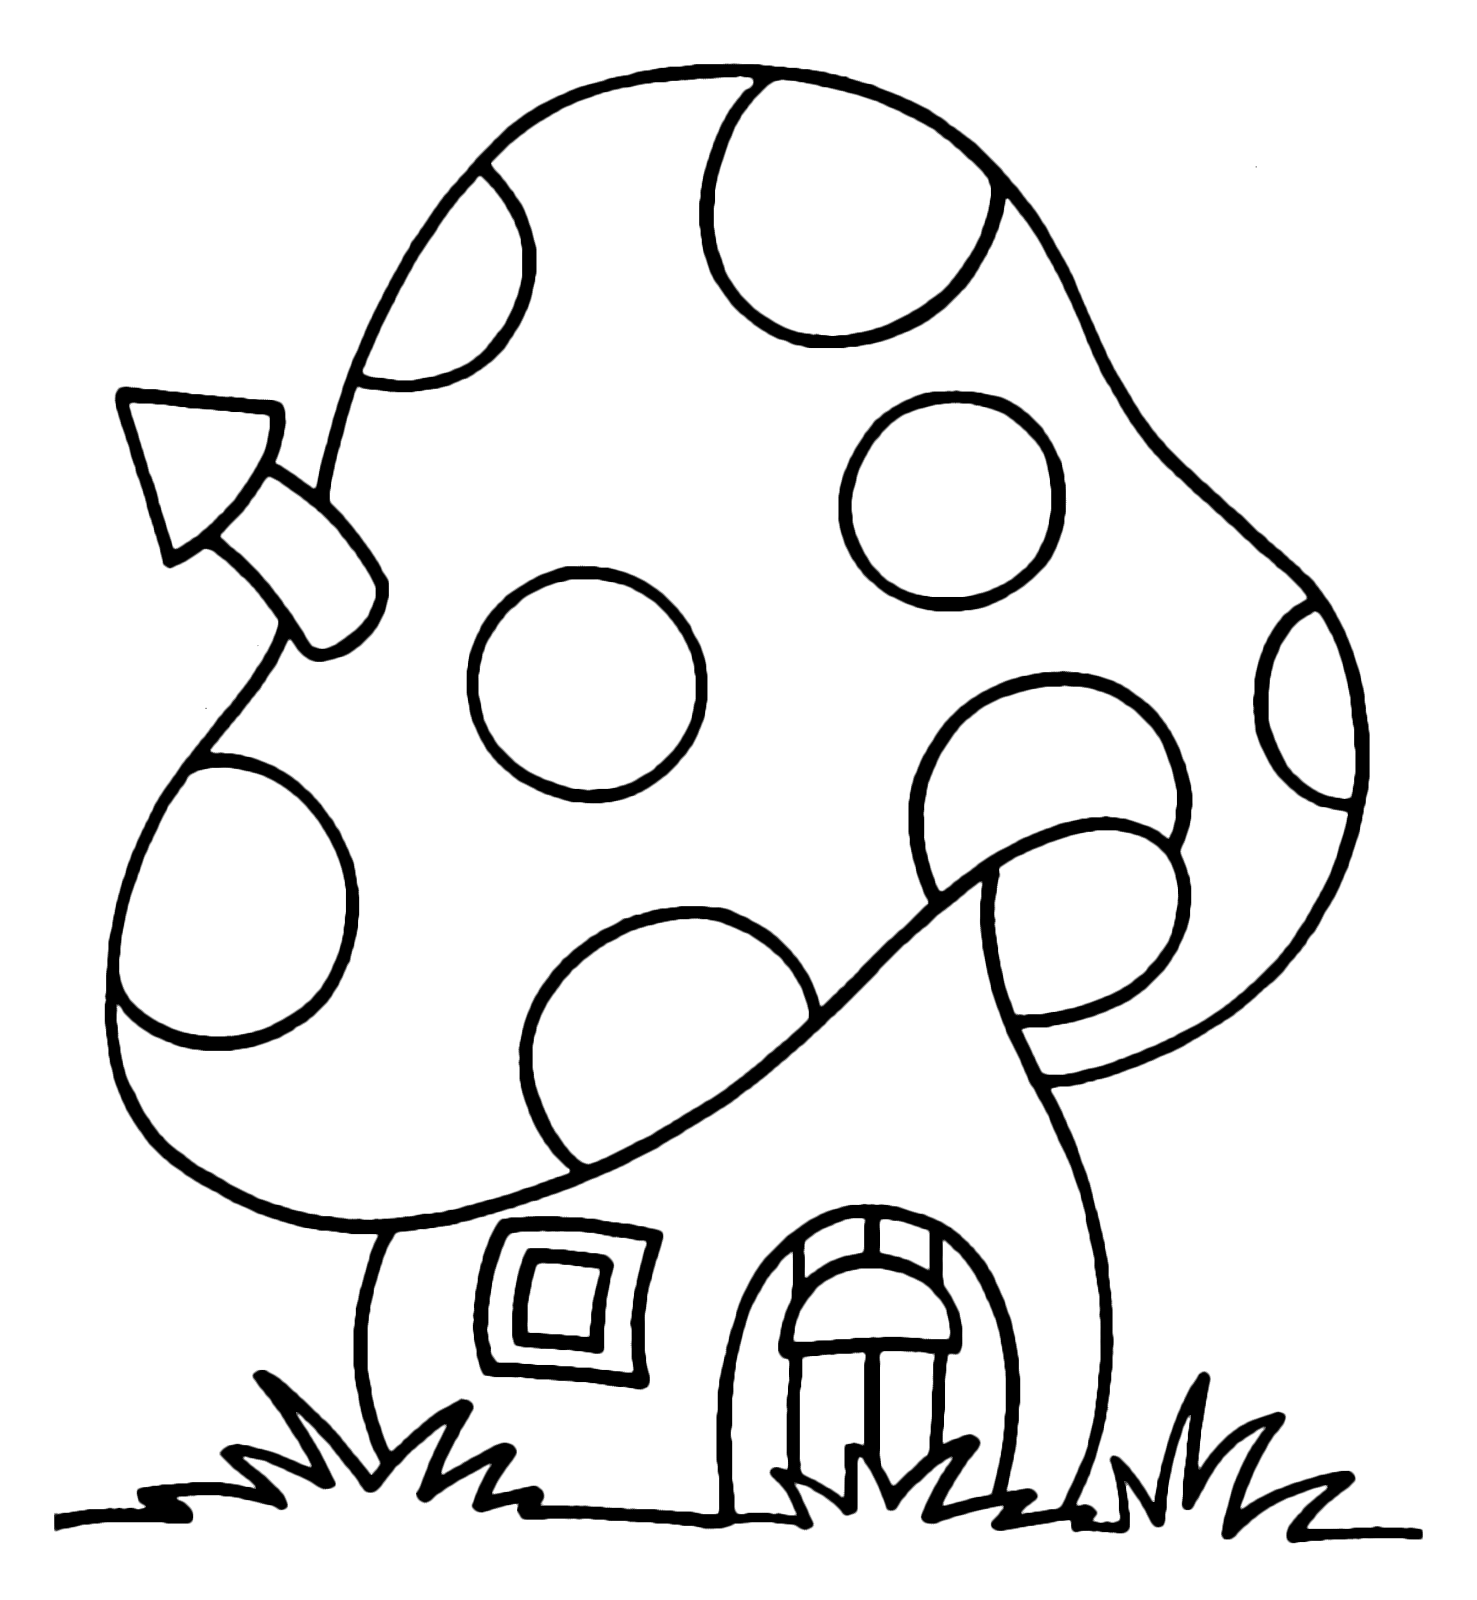 coloring pages easy easy coloring pages coloringrocks pages easy coloring